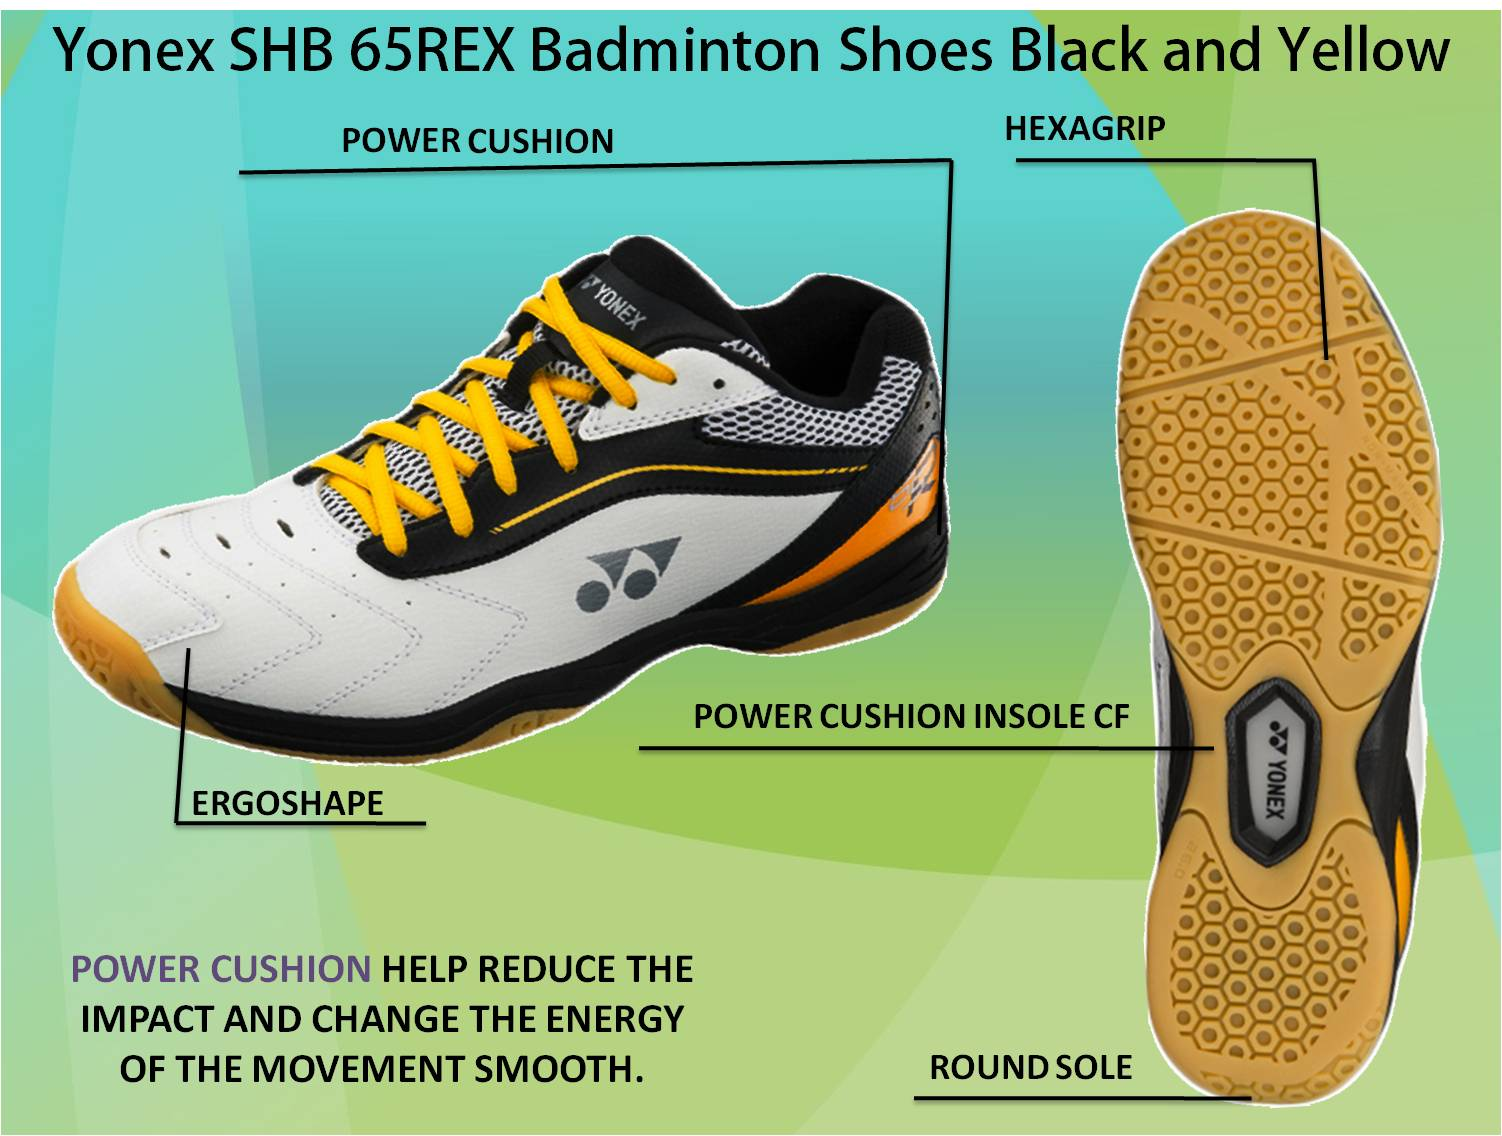 Yonex SHB 65 REX Badminton Shoes Black and Yellow 33e180844478b